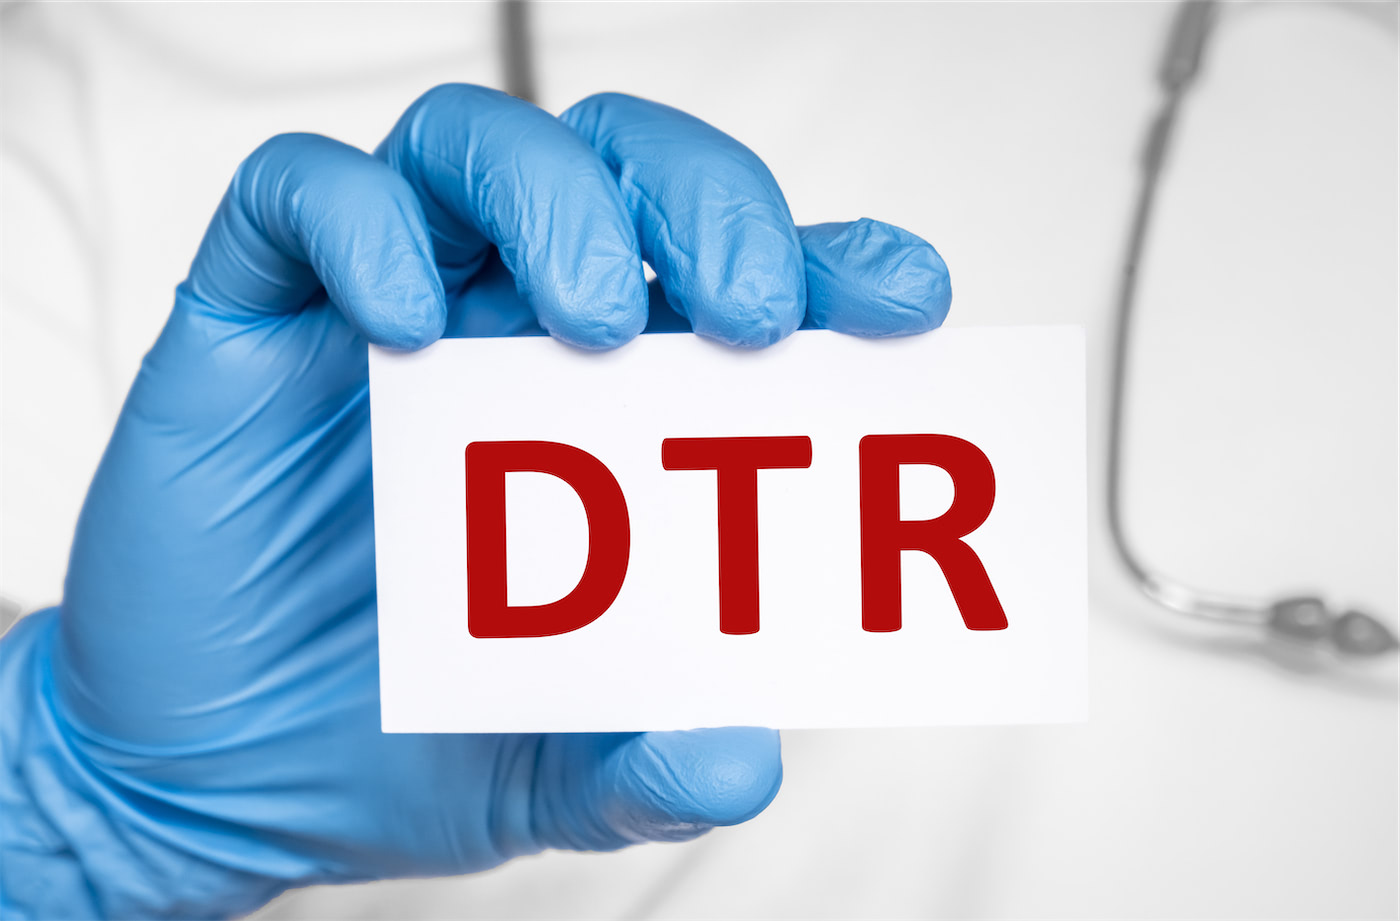 doctor holding card that says DTR